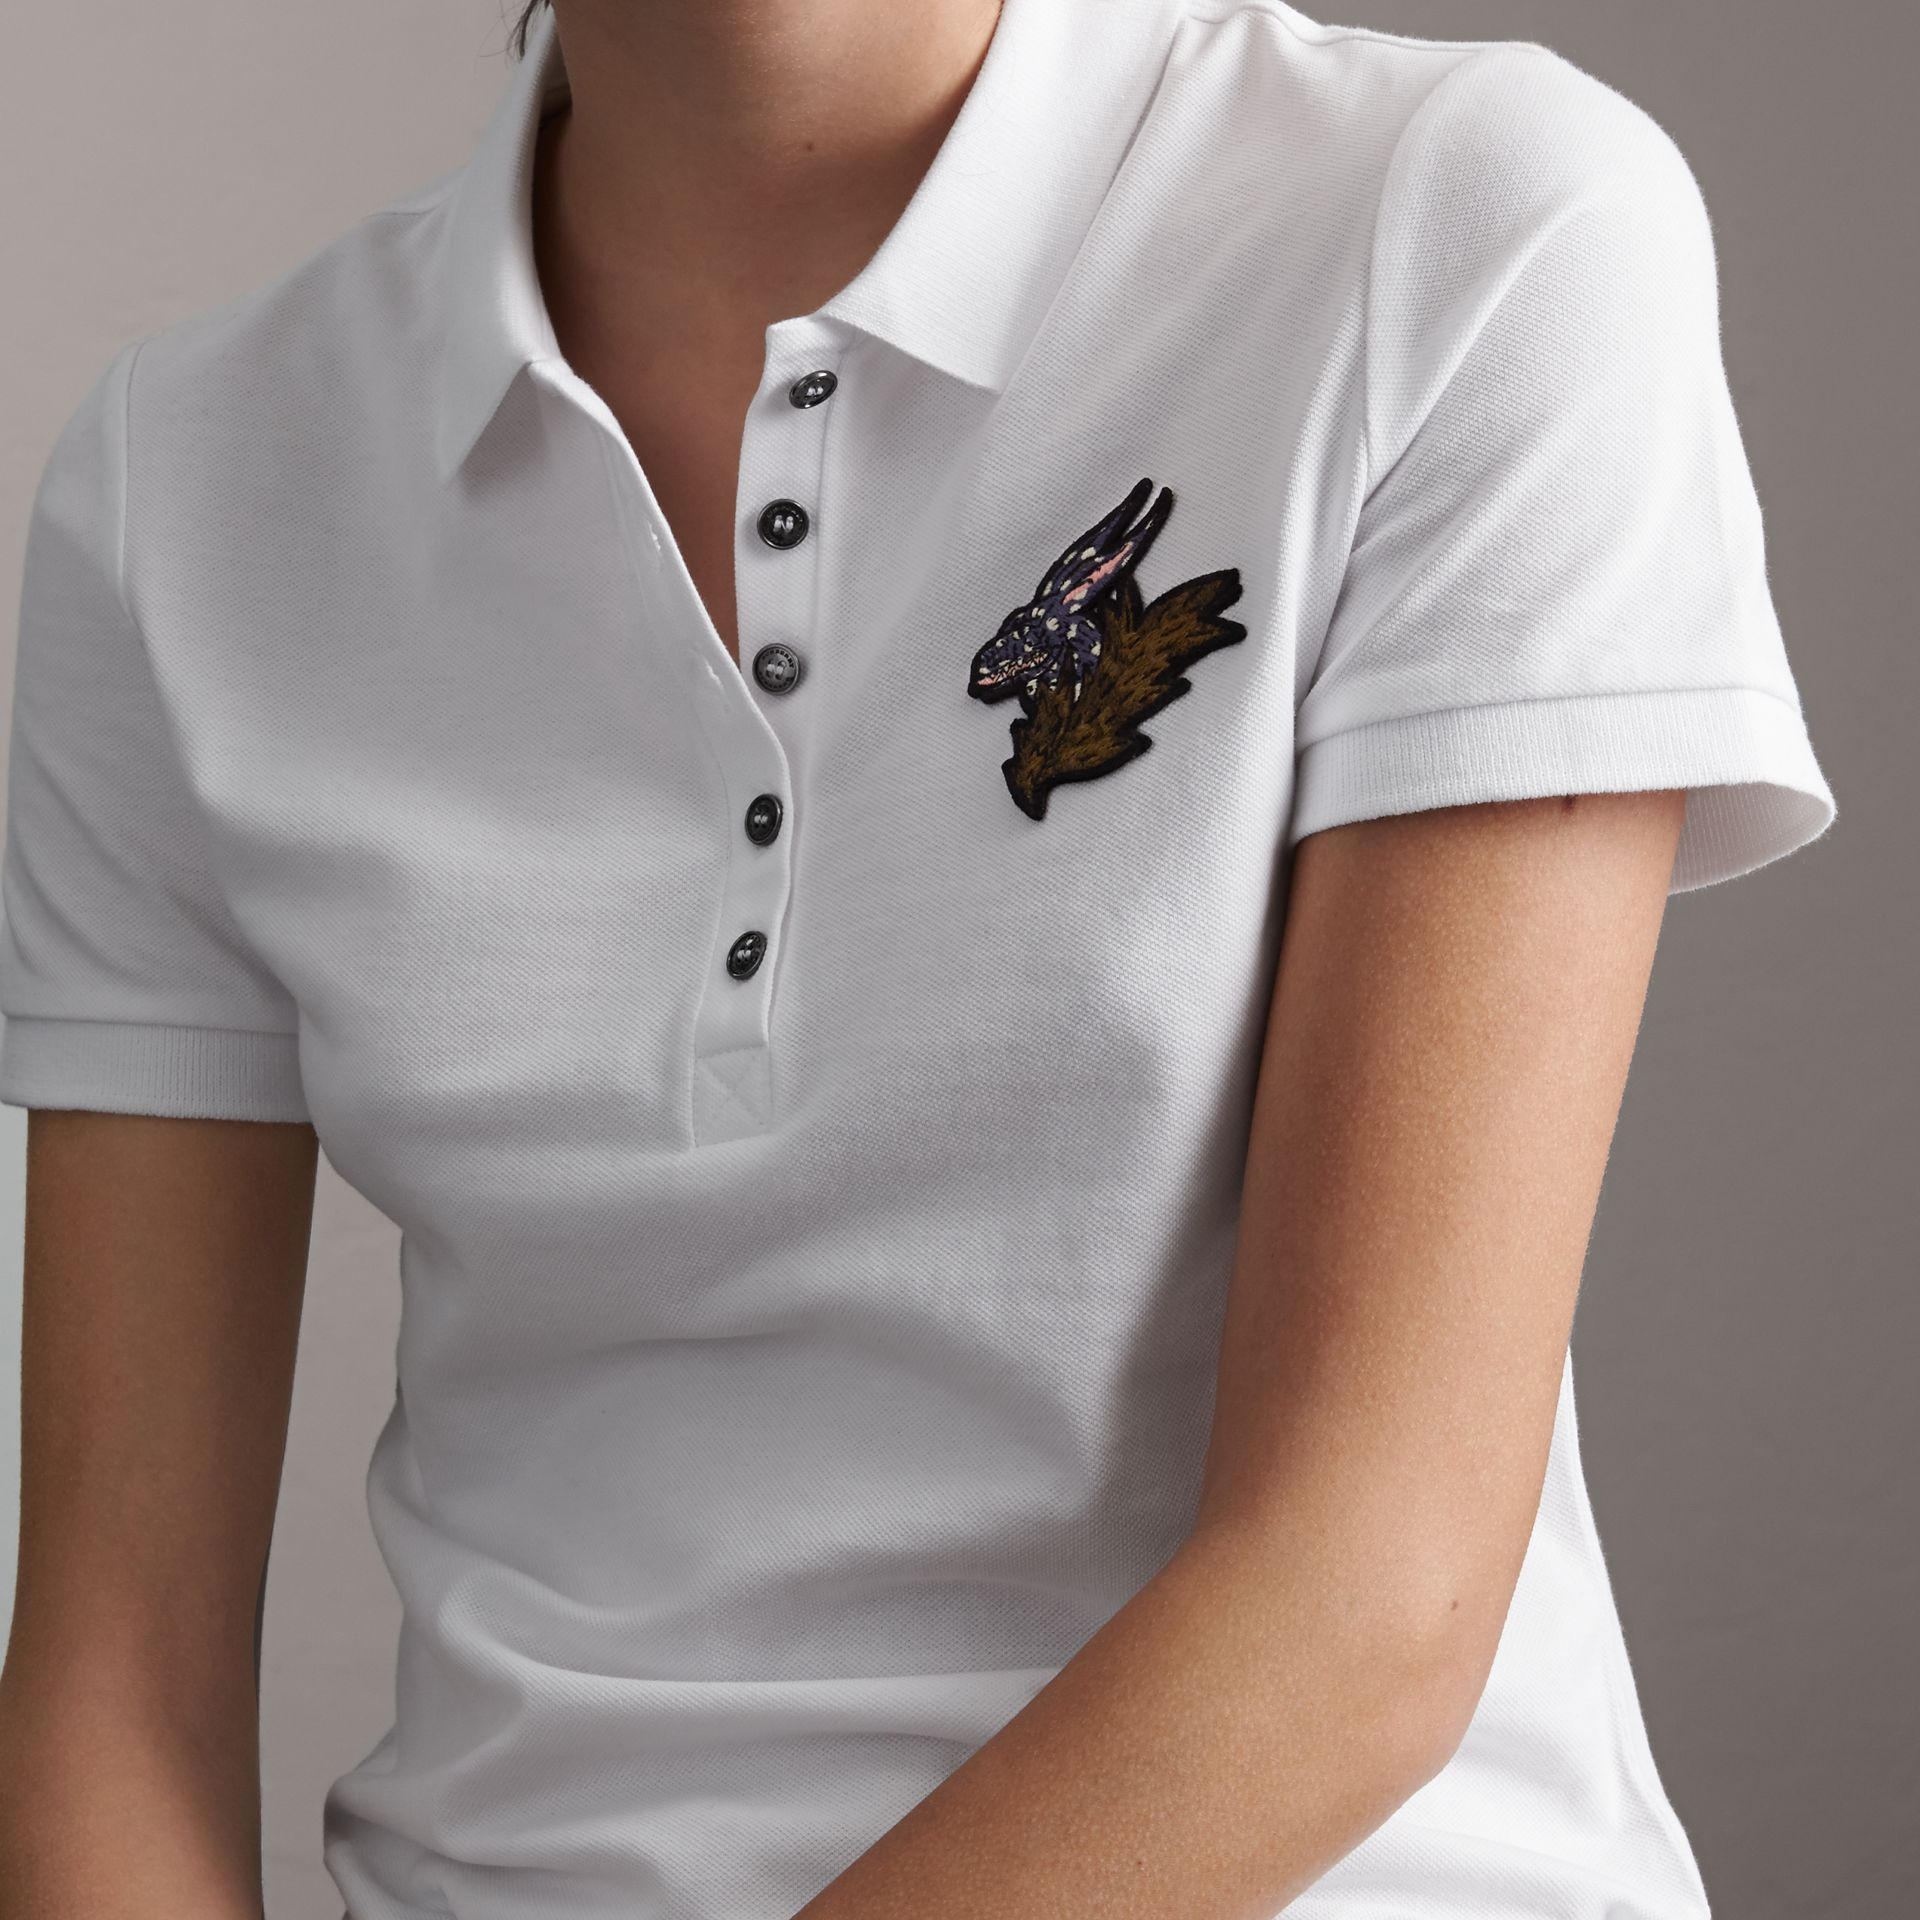 Beasts Motif Stretch Cotton Piqué Polo Shirt in White - Women | Burberry - gallery image 4